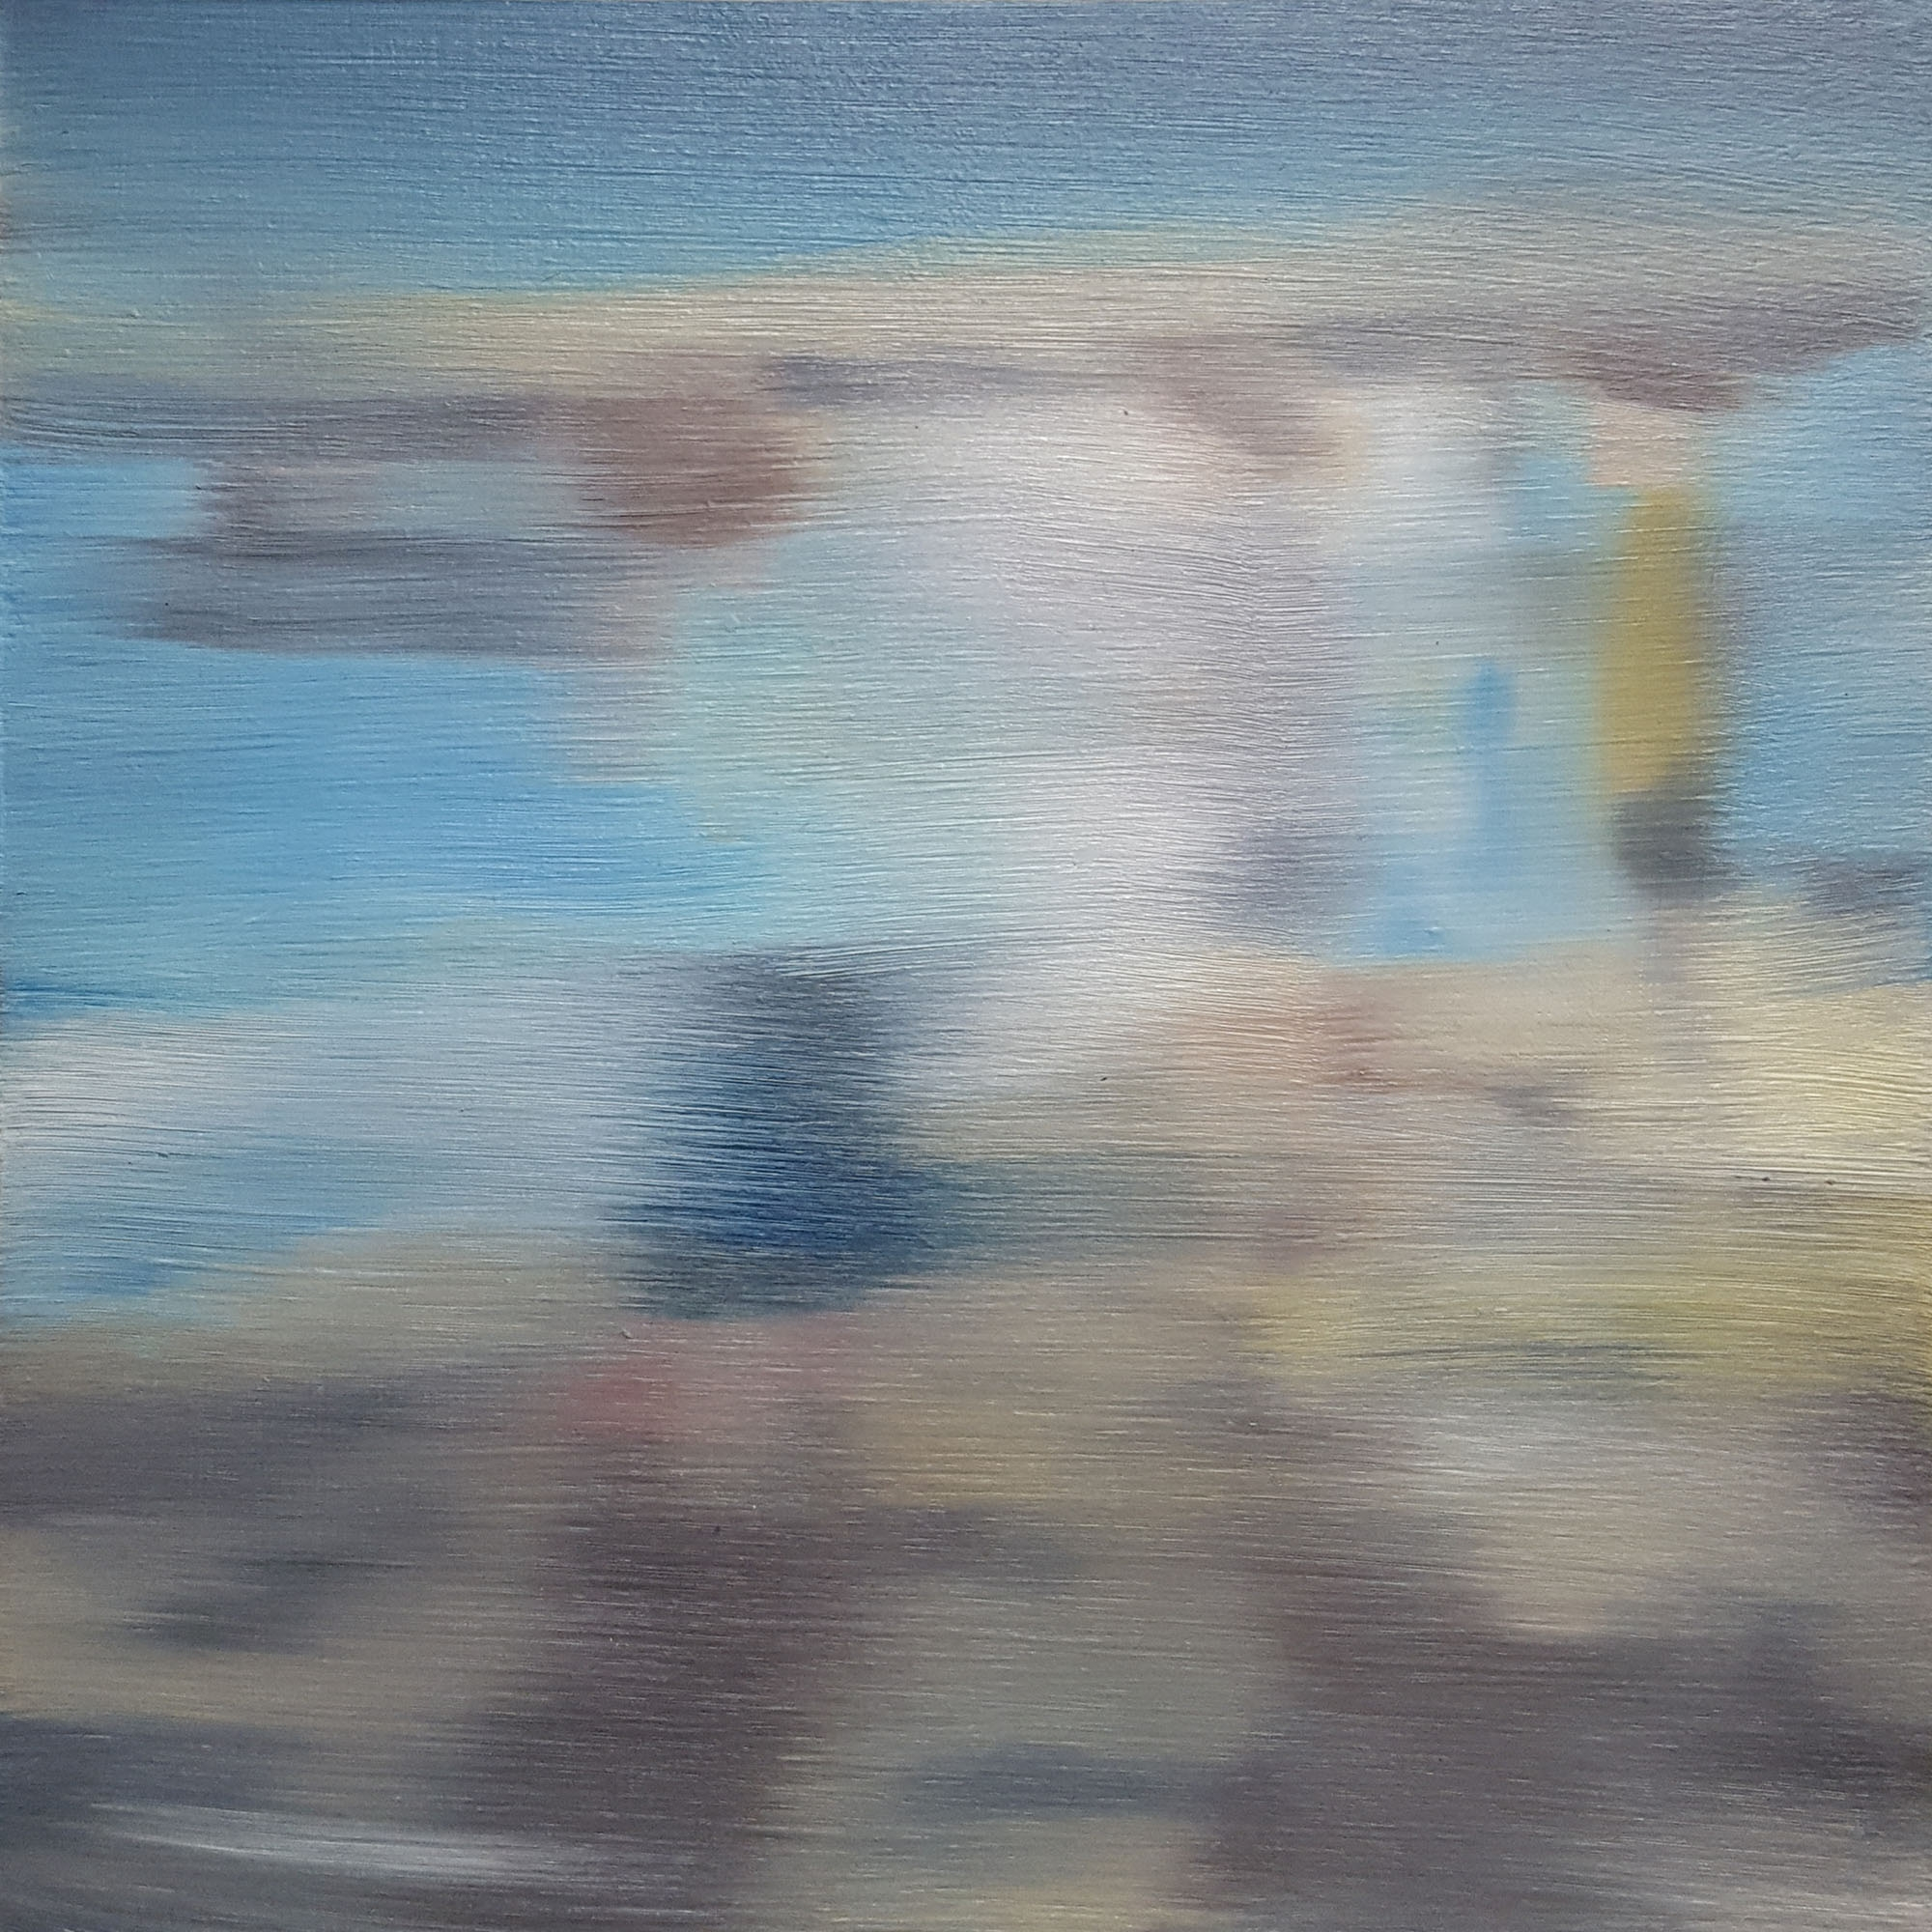 Day at the Beaches #4 by Shannon  Dickie